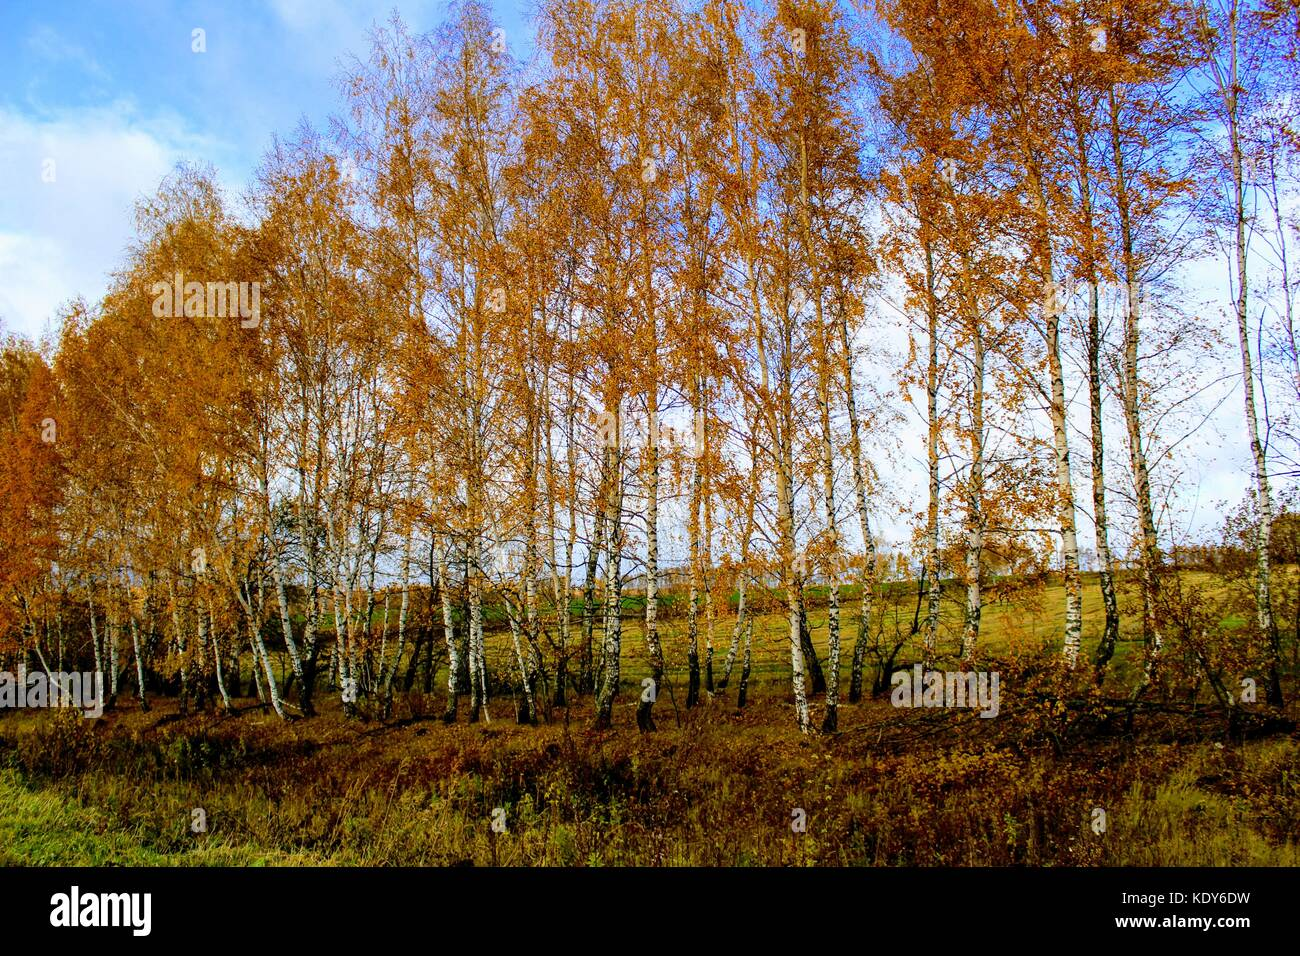 Autumns stock photos autumns stock images alamy - Planting fruit trees in autumn ...